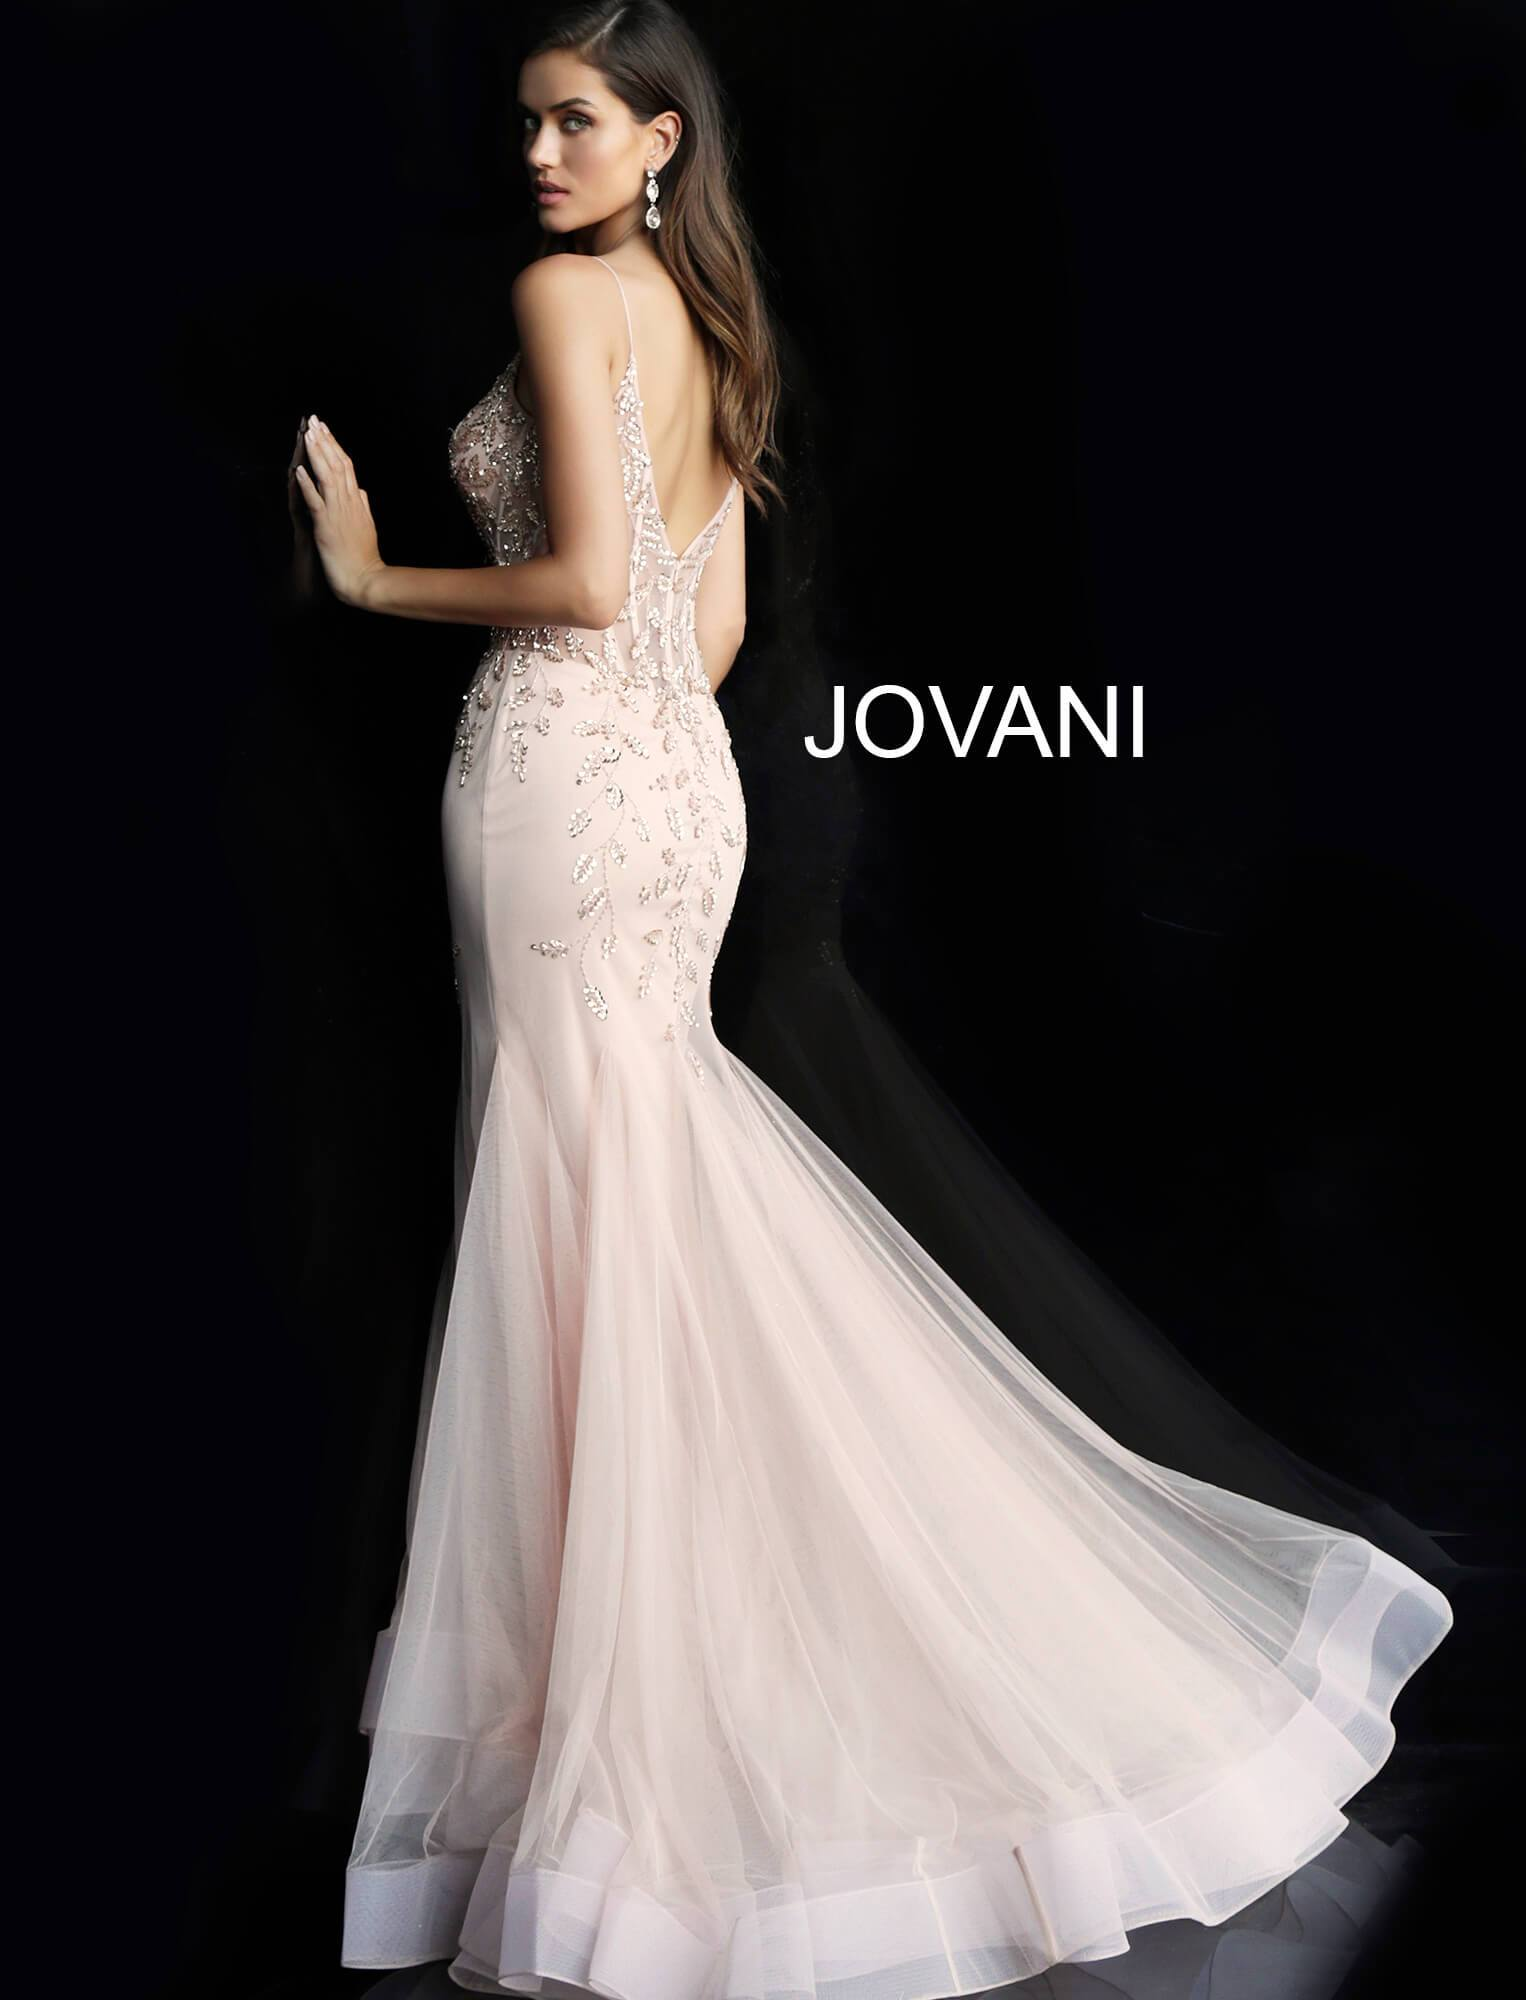 Jovani Blush Embellished Mermaid Gown - Gissings Boutique